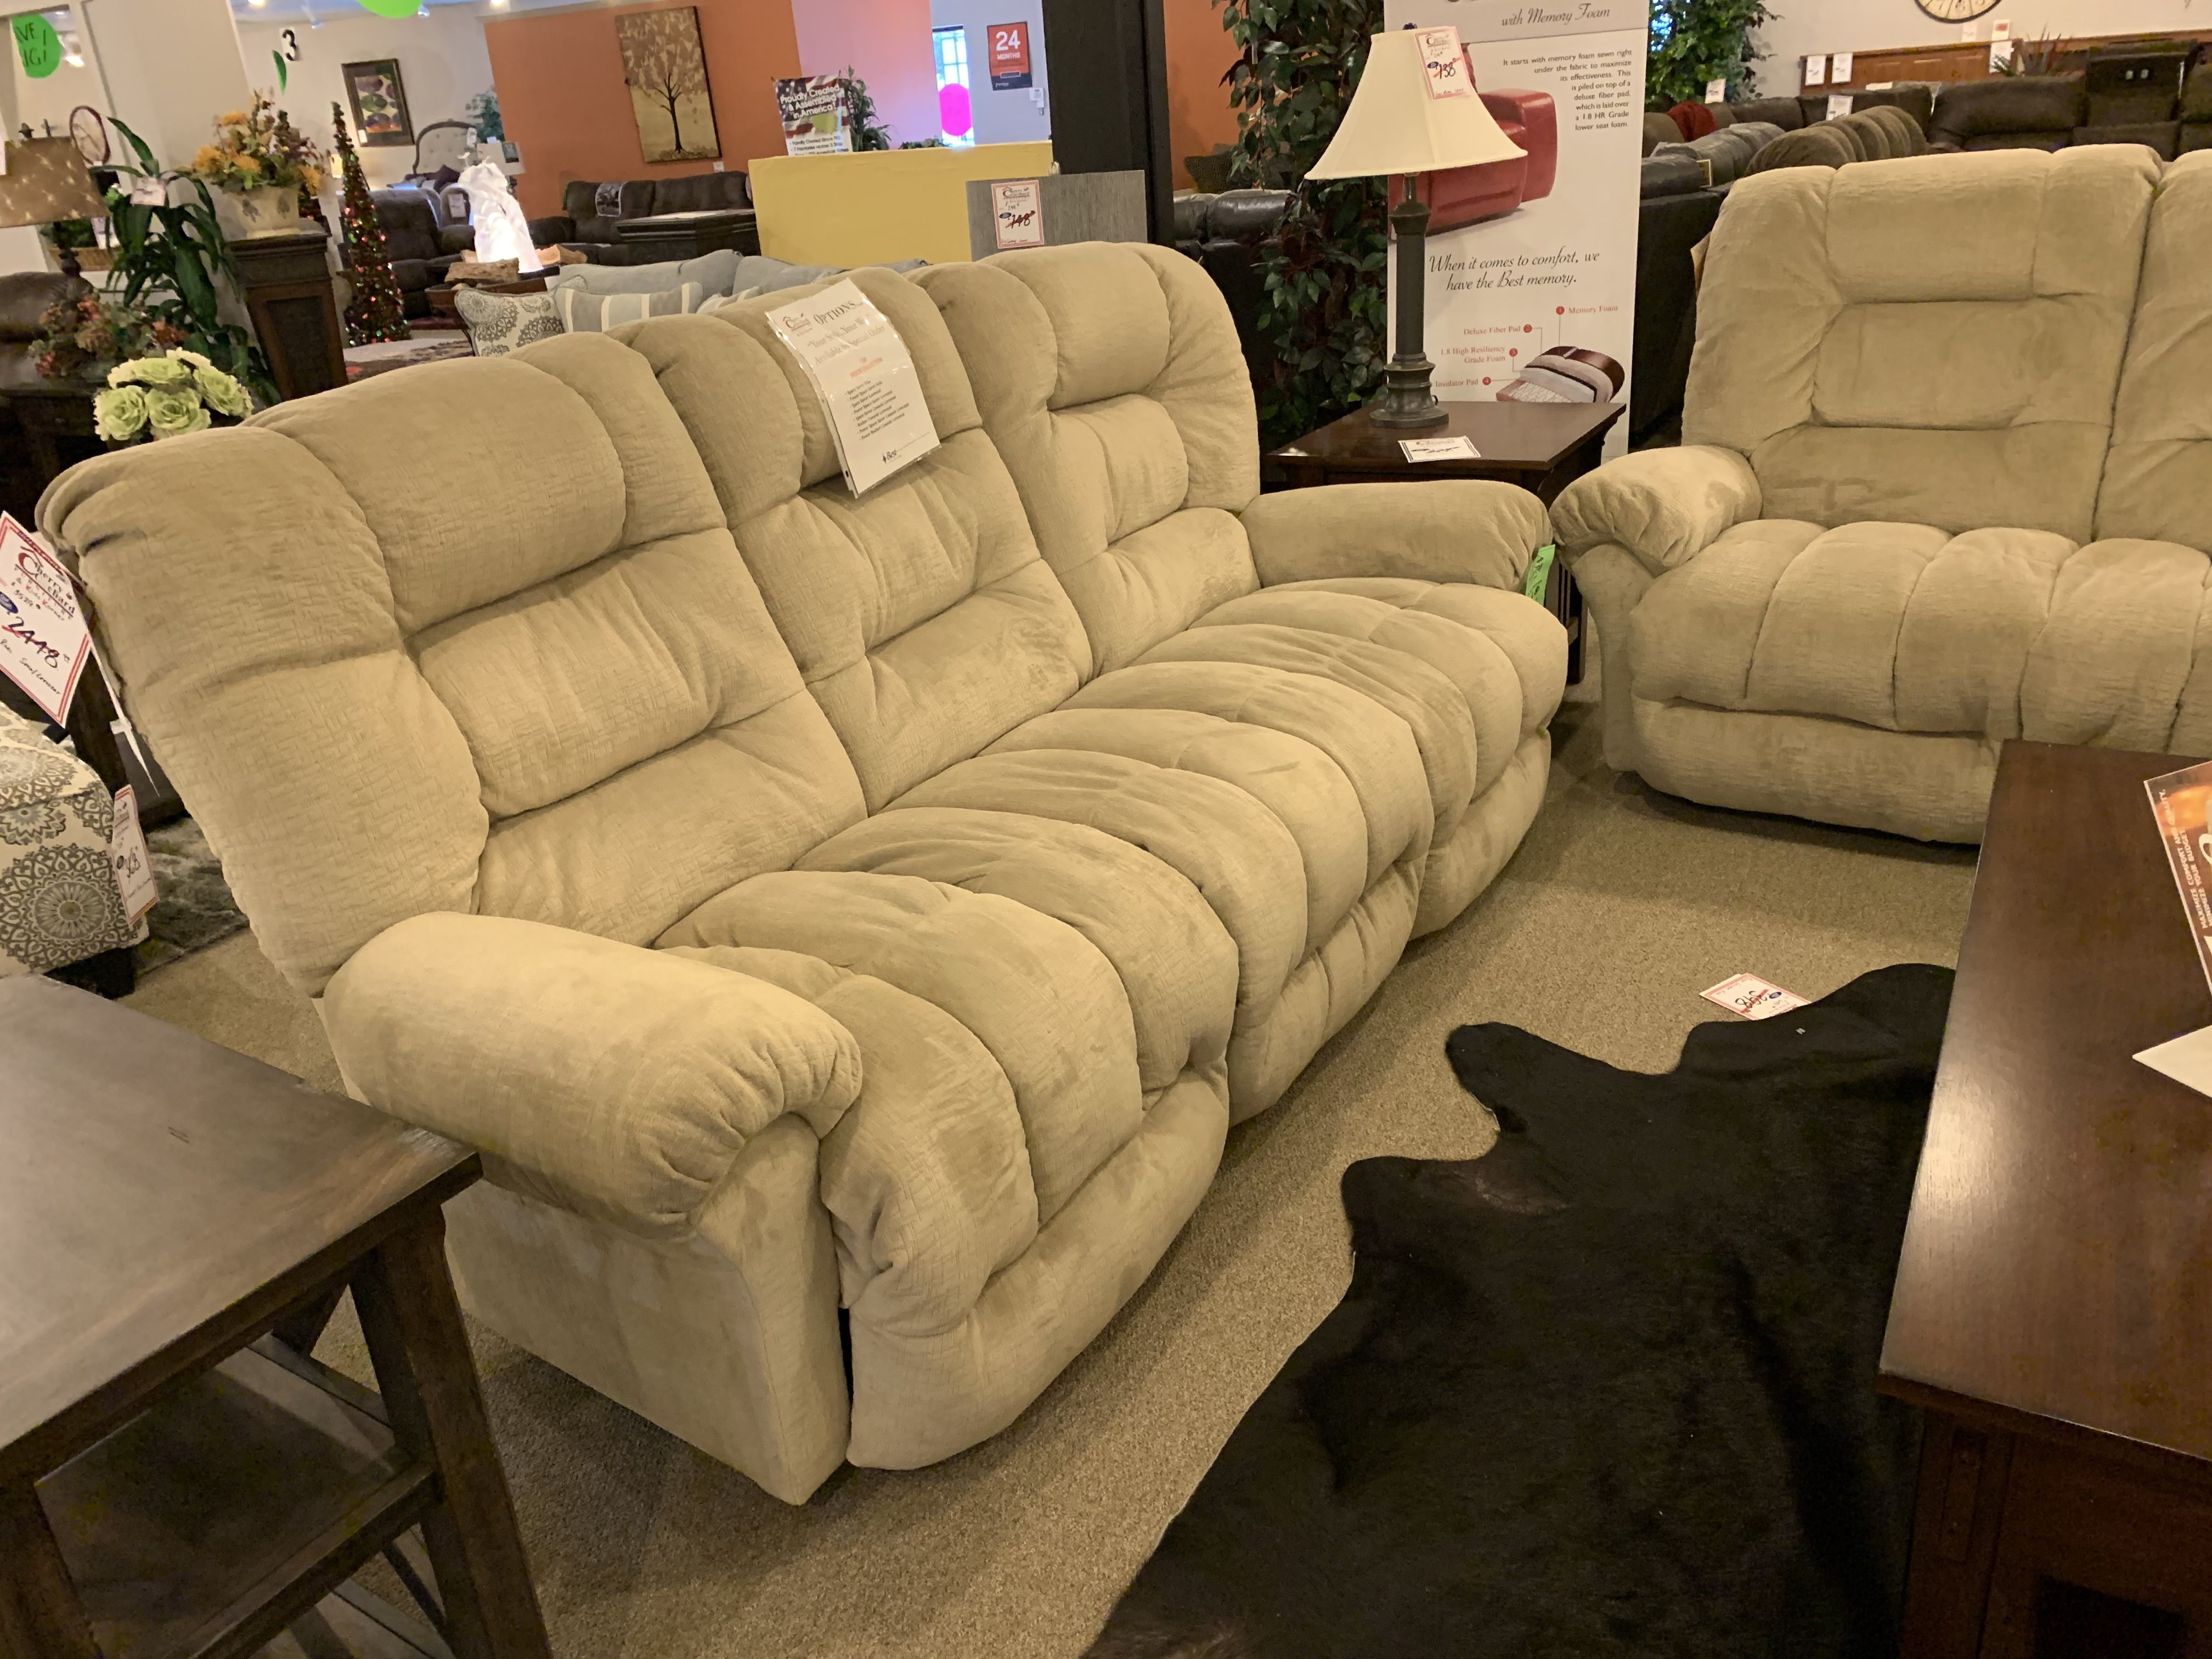 Astonishing The Best Reclining Sofa You Have Seen At The Cheapest Price Squirreltailoven Fun Painted Chair Ideas Images Squirreltailovenorg